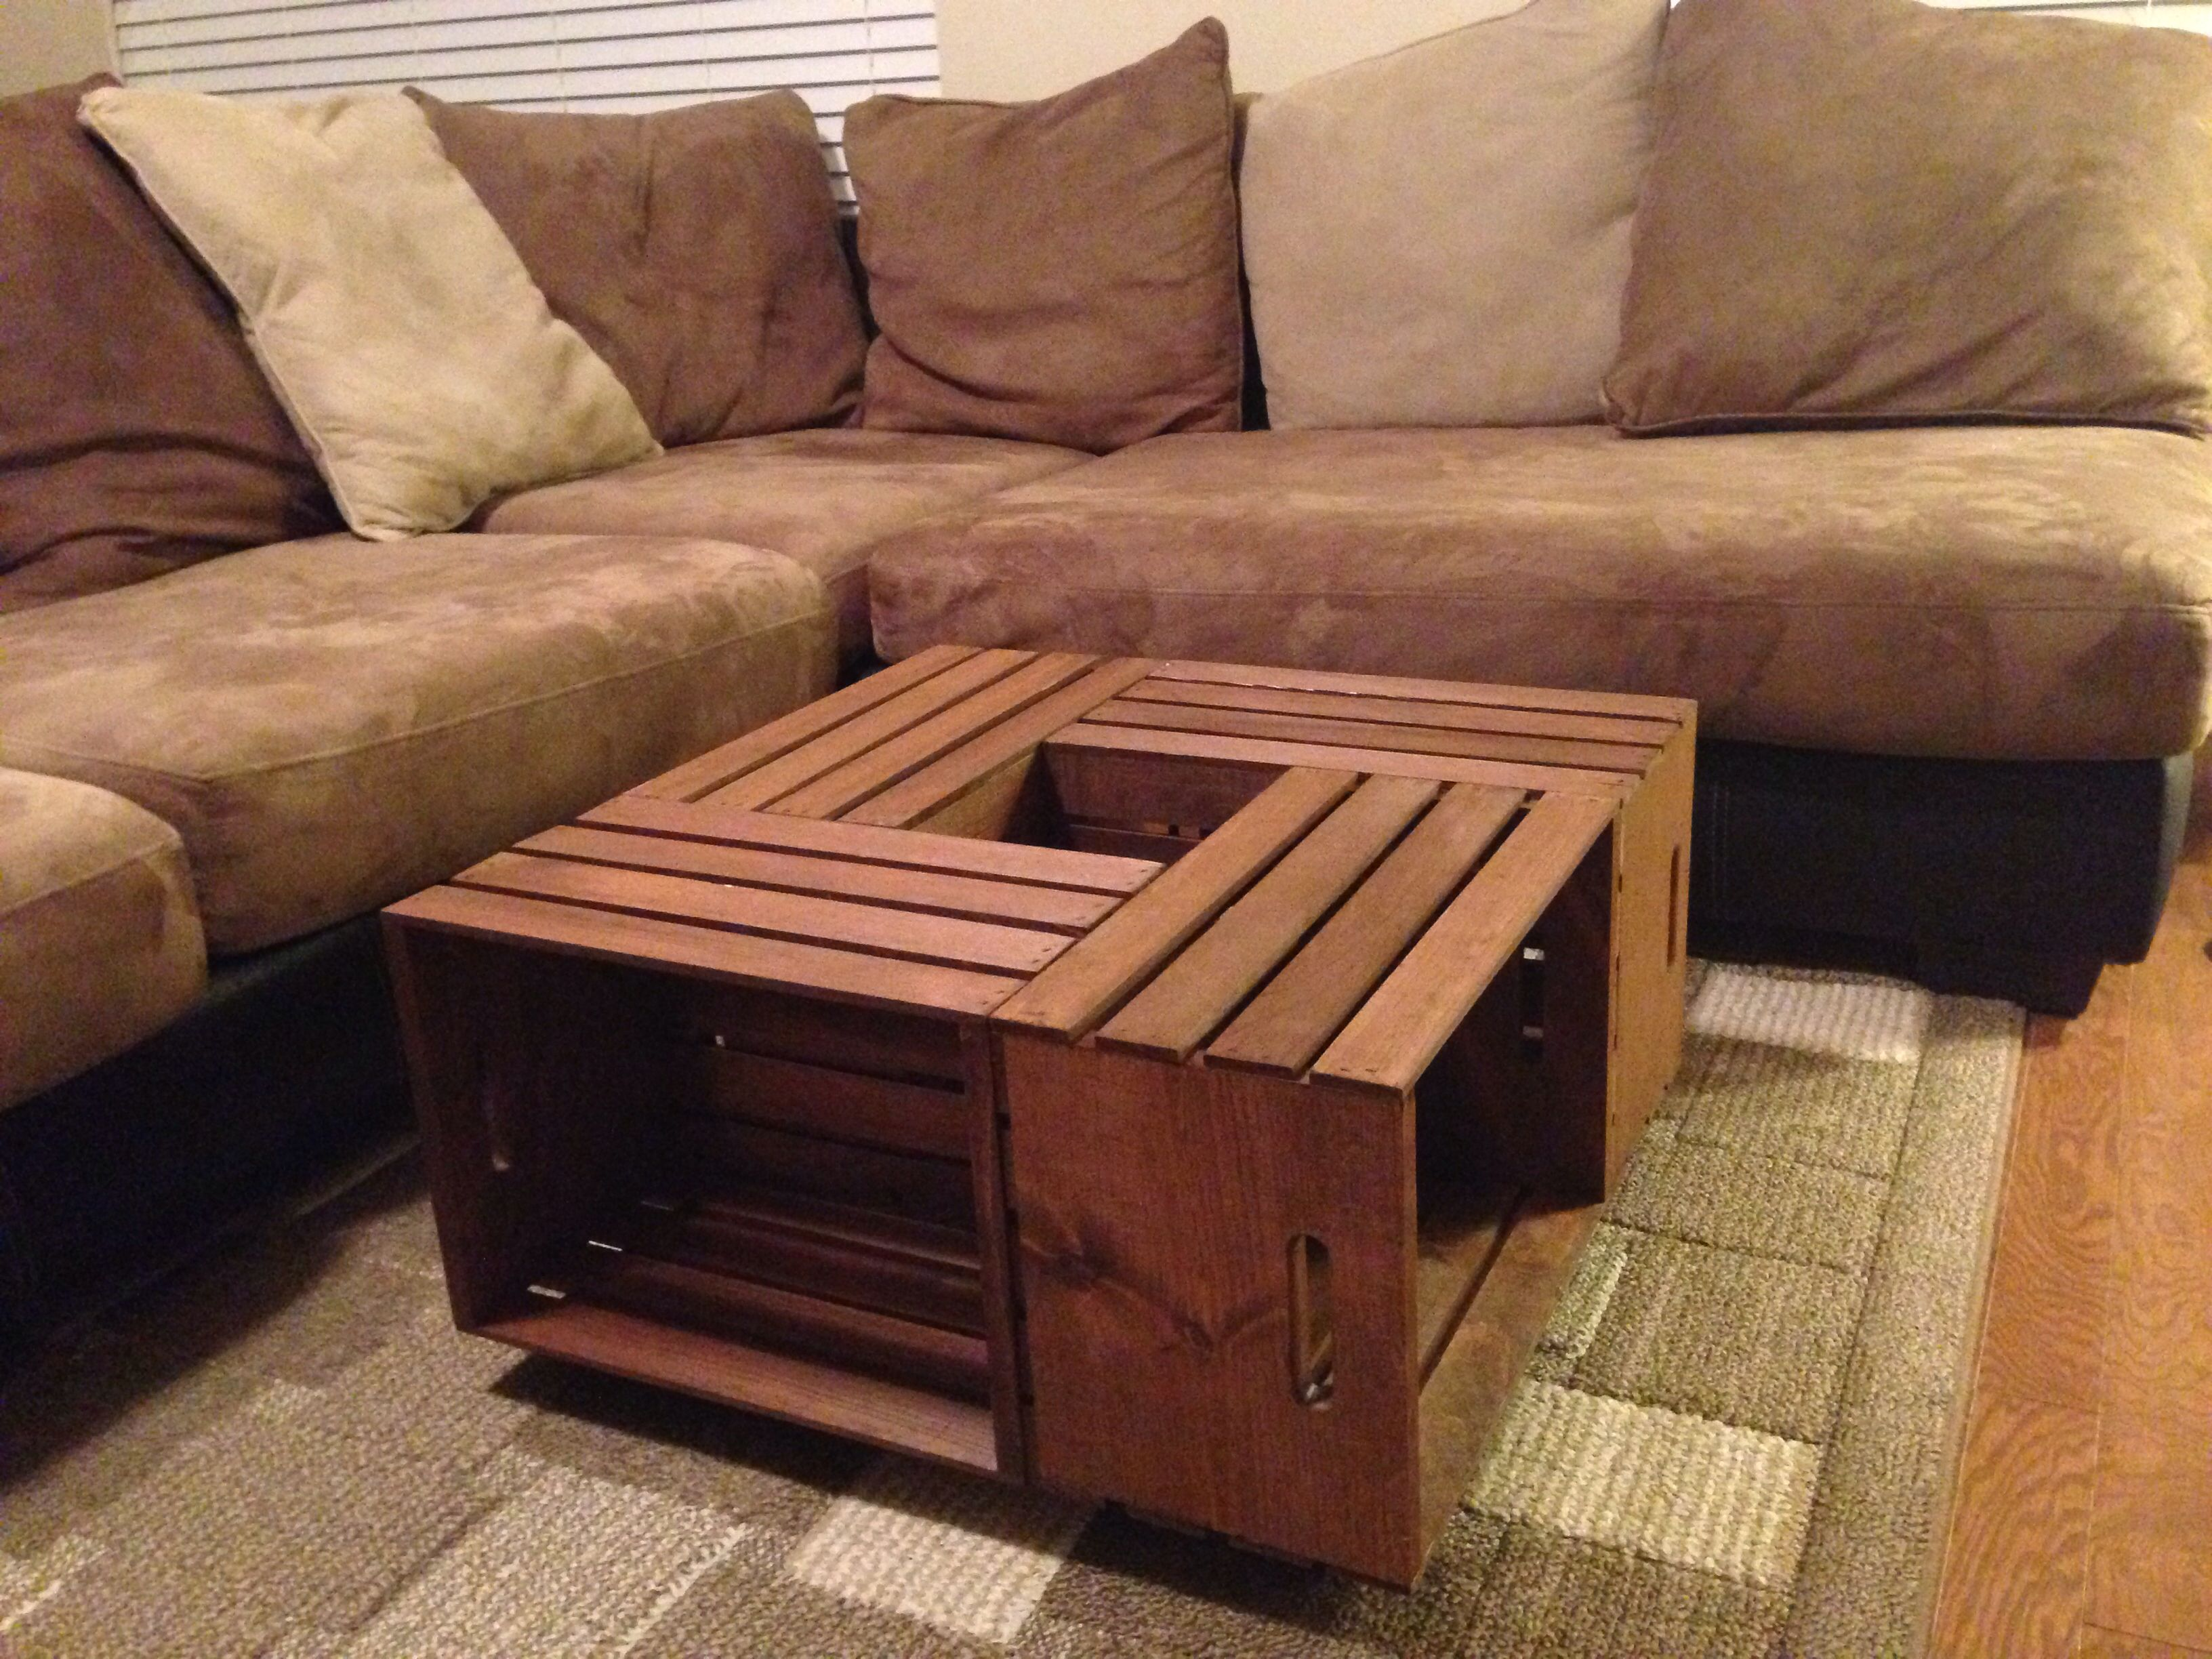 Diy Coffee Table My Husband Made This Coffee Table Out Of Apple Crates From Home Depot Online